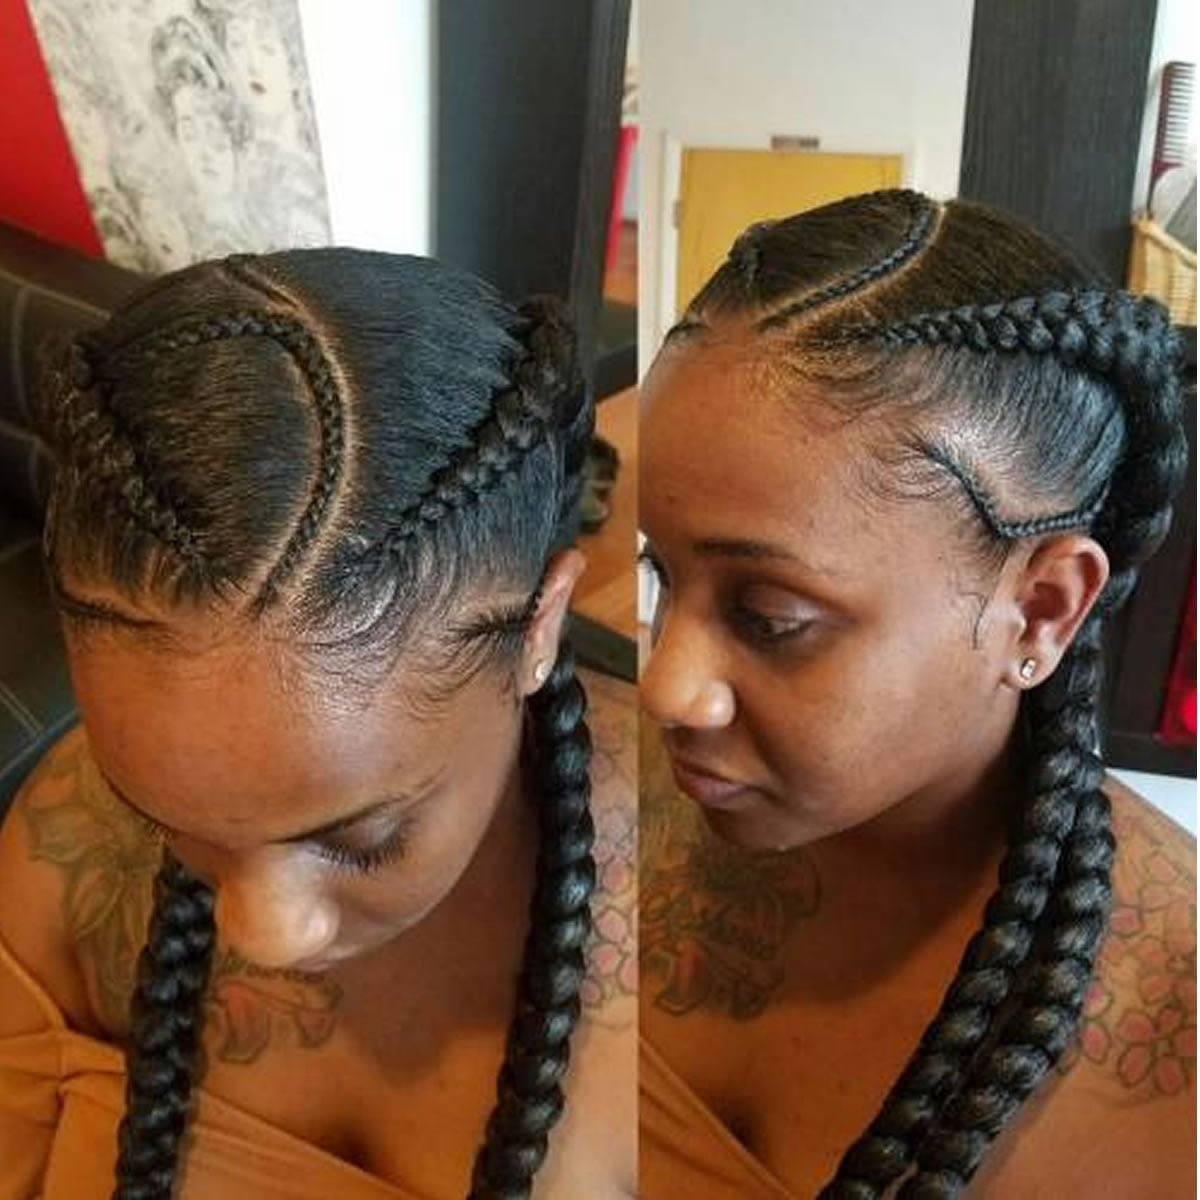 Free 25 Incredibly Nice Ghana Braids Hairstyles For All Wallpaper